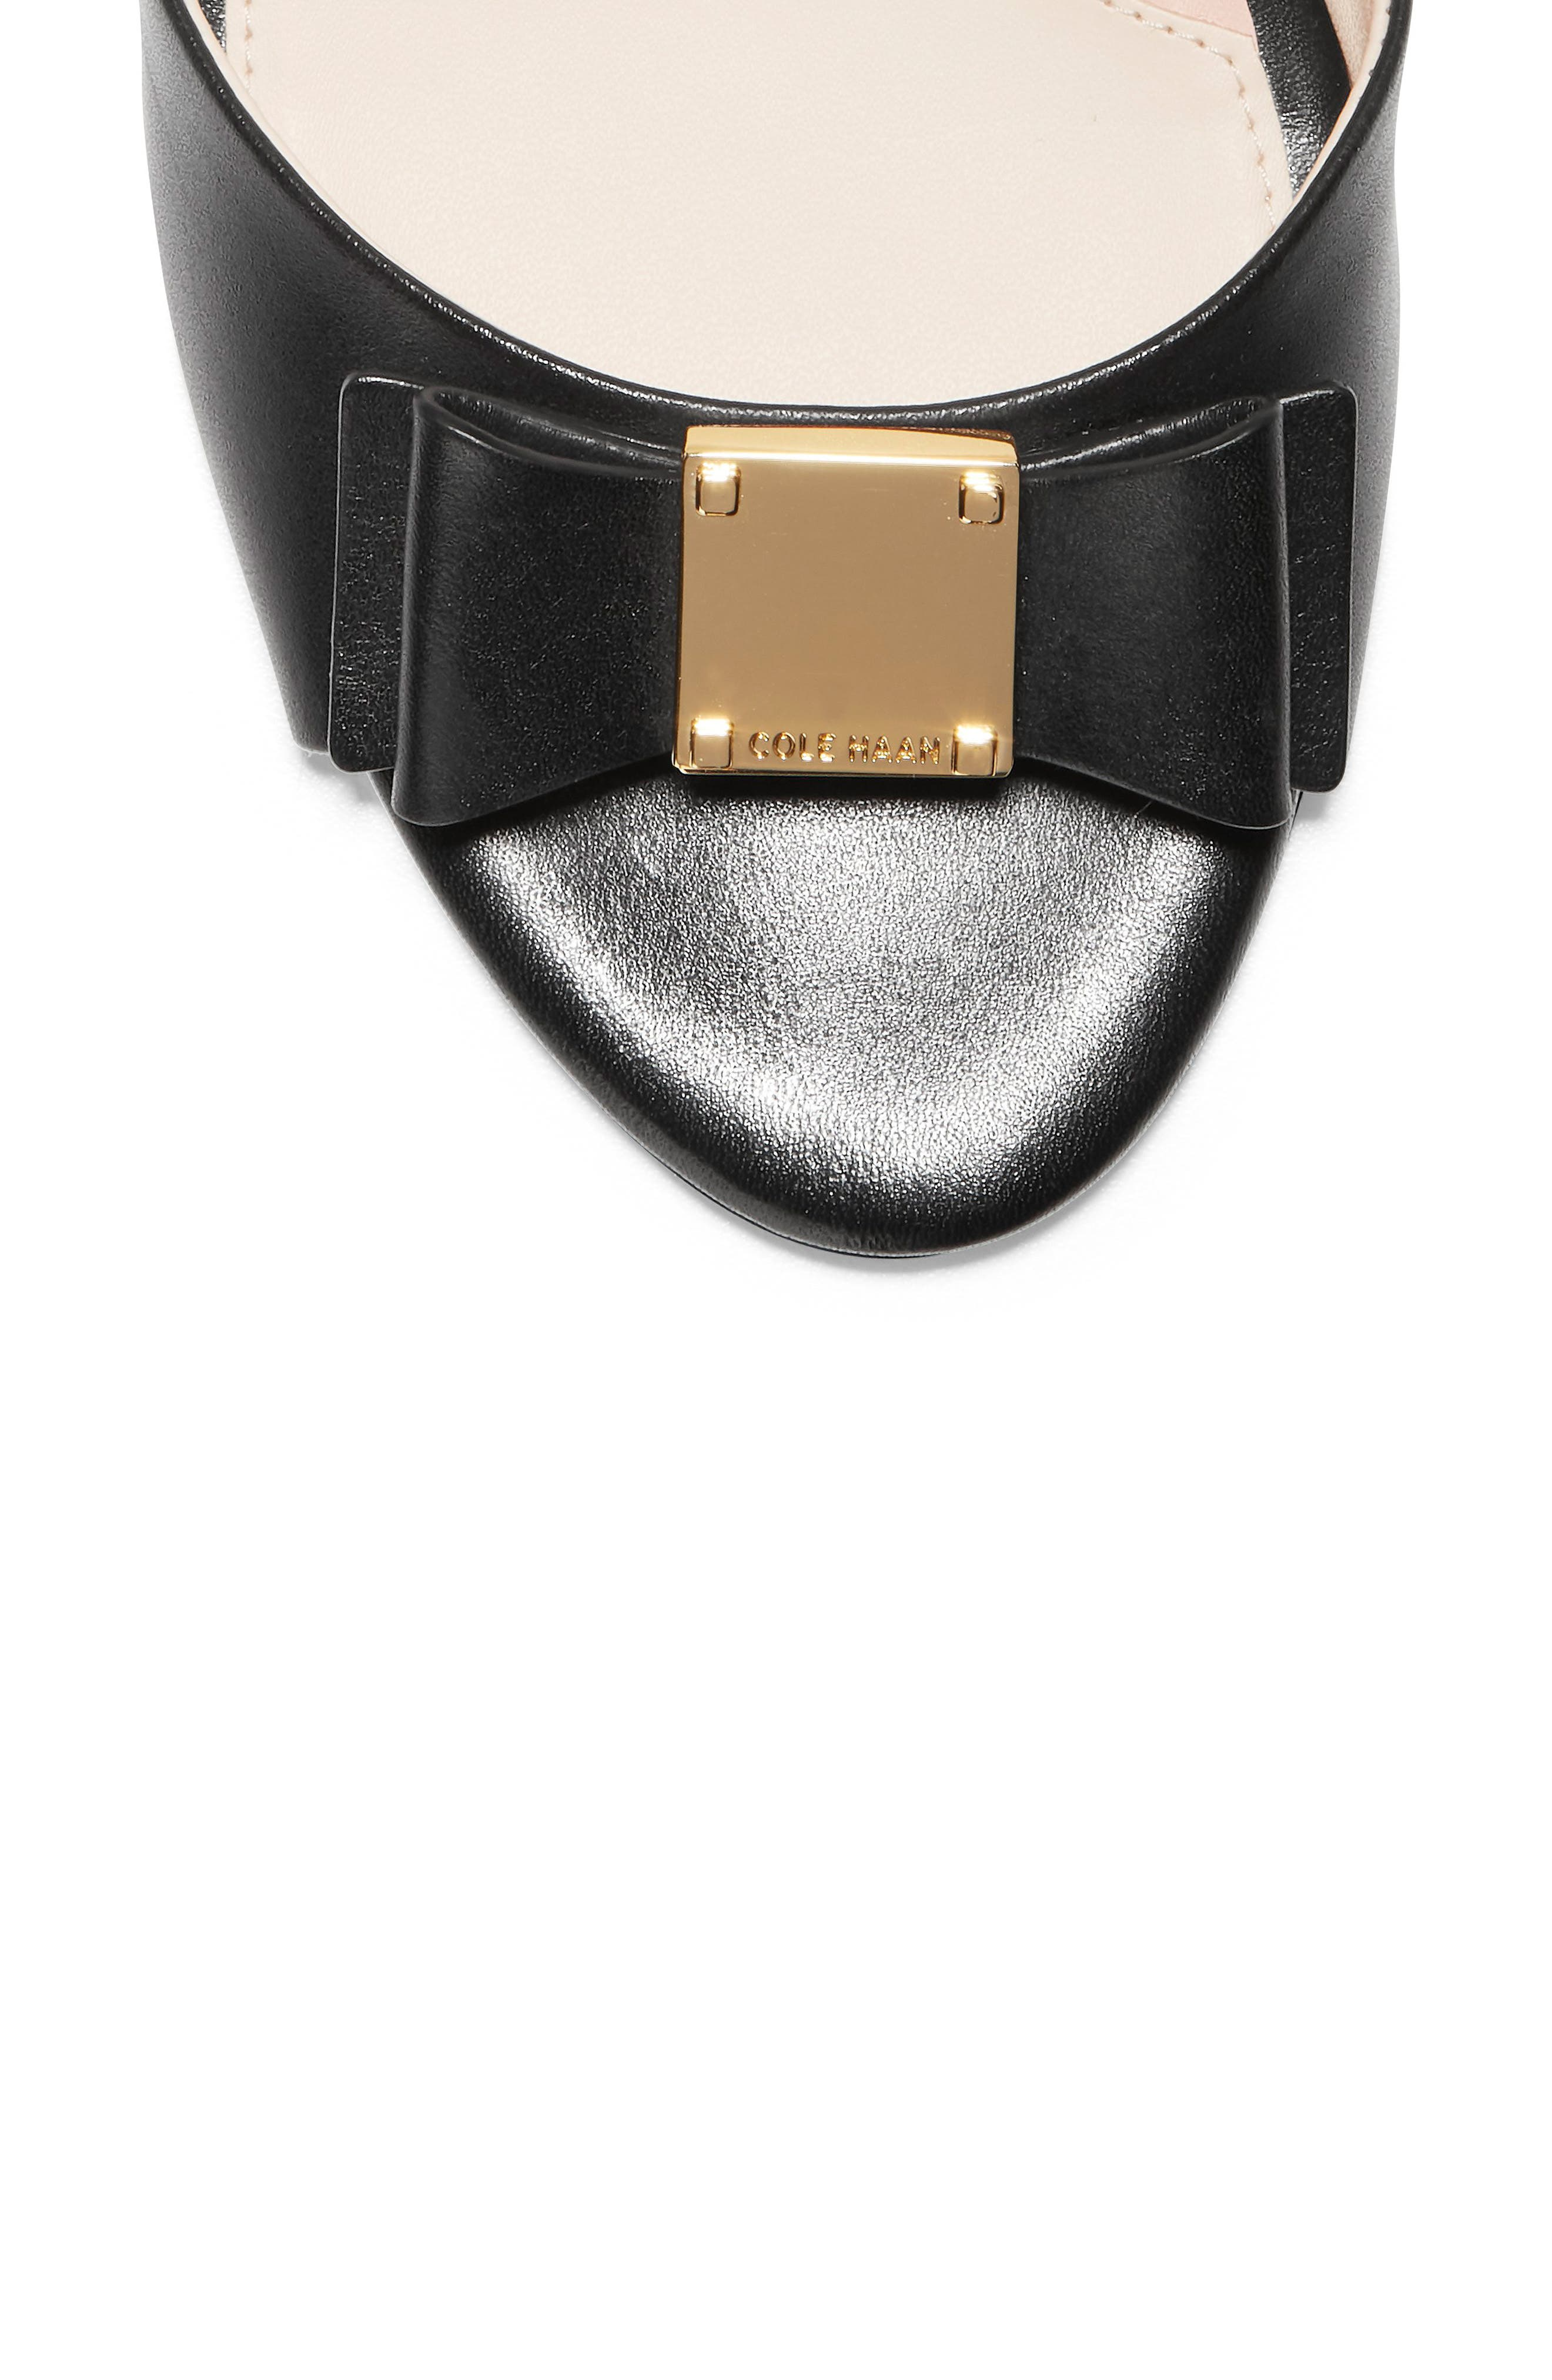 COLE HAAN, Tali Bow Wedge Sandal, Alternate thumbnail 7, color, BLACK LEATHER